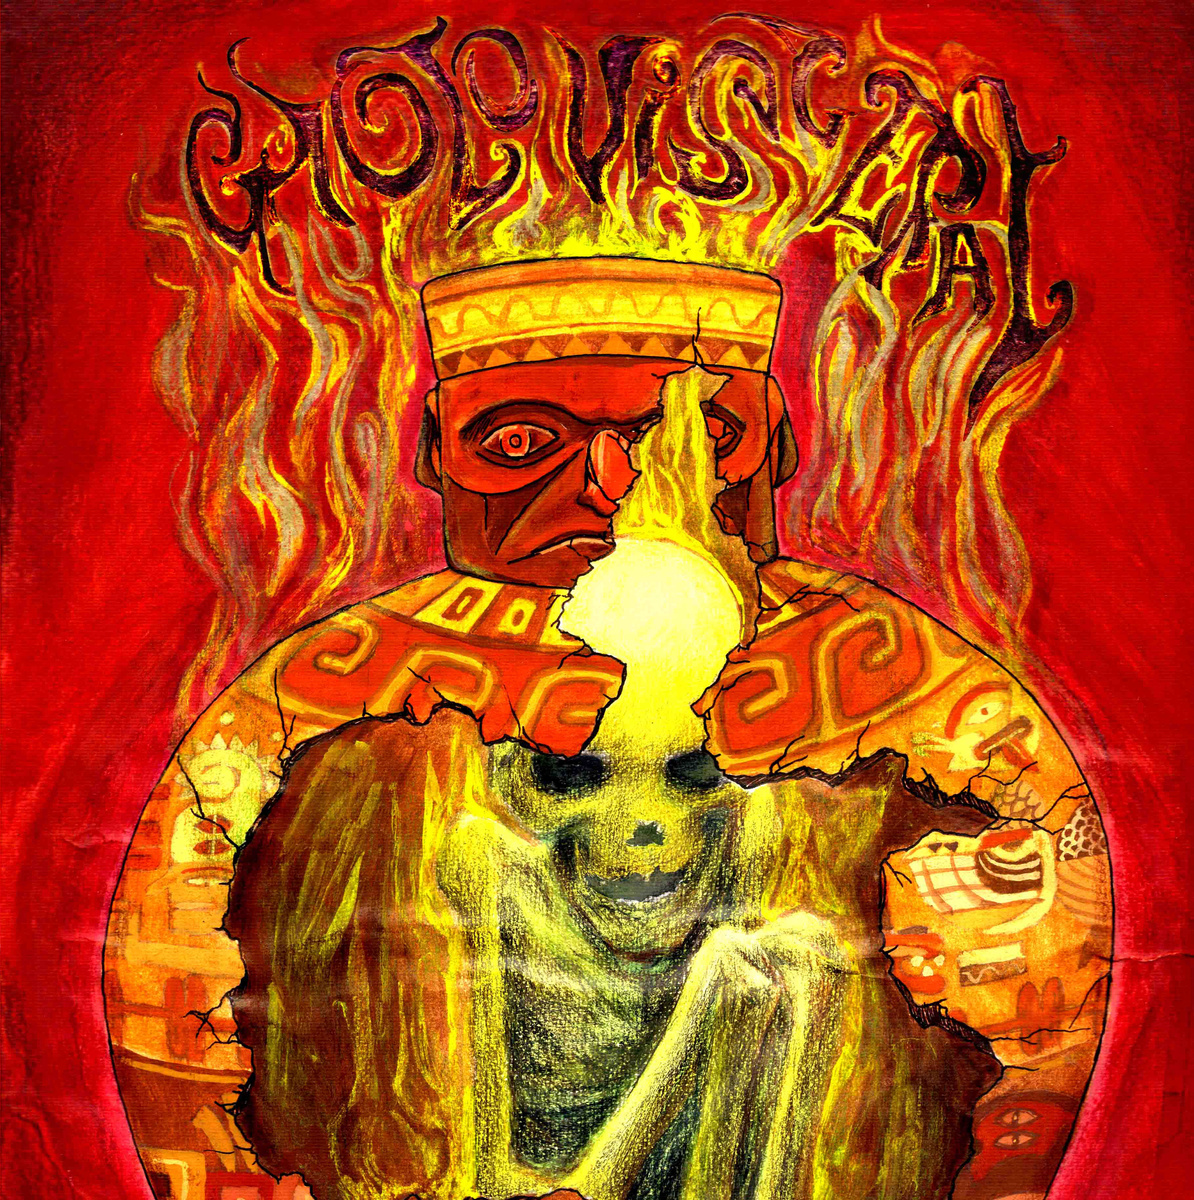 Cholo Visceral Cover